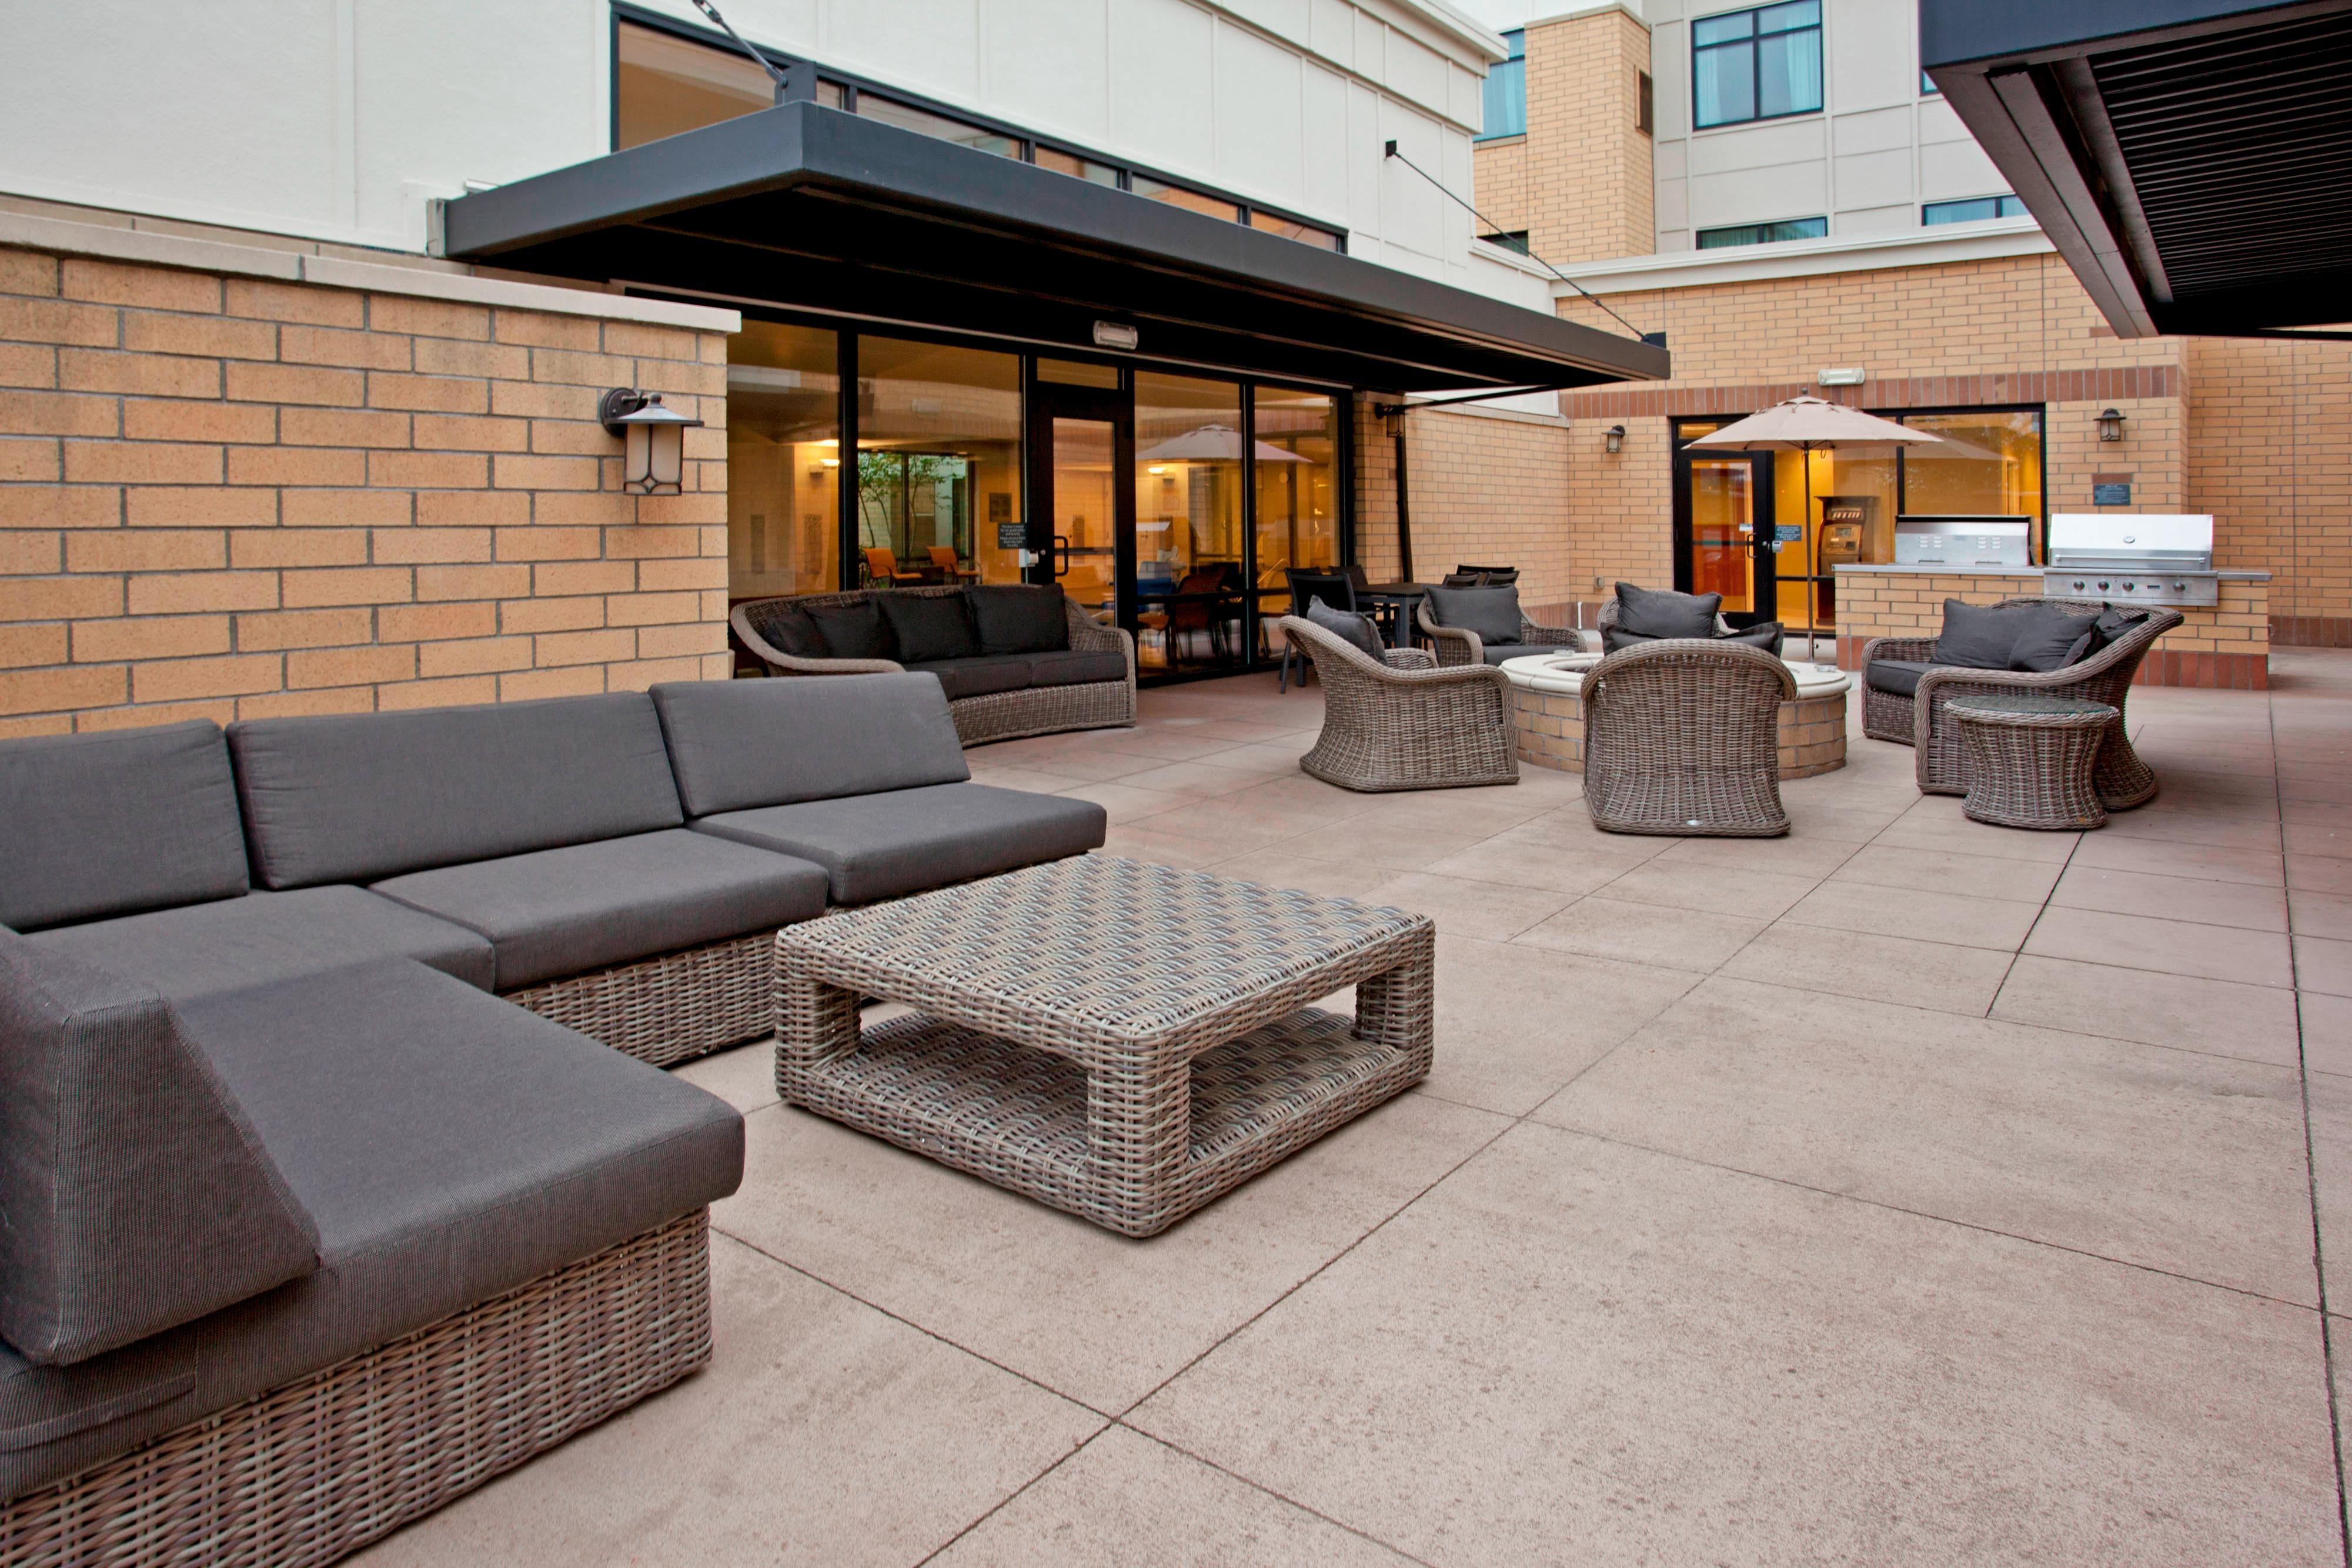 Courtyard Barbeque & Patio